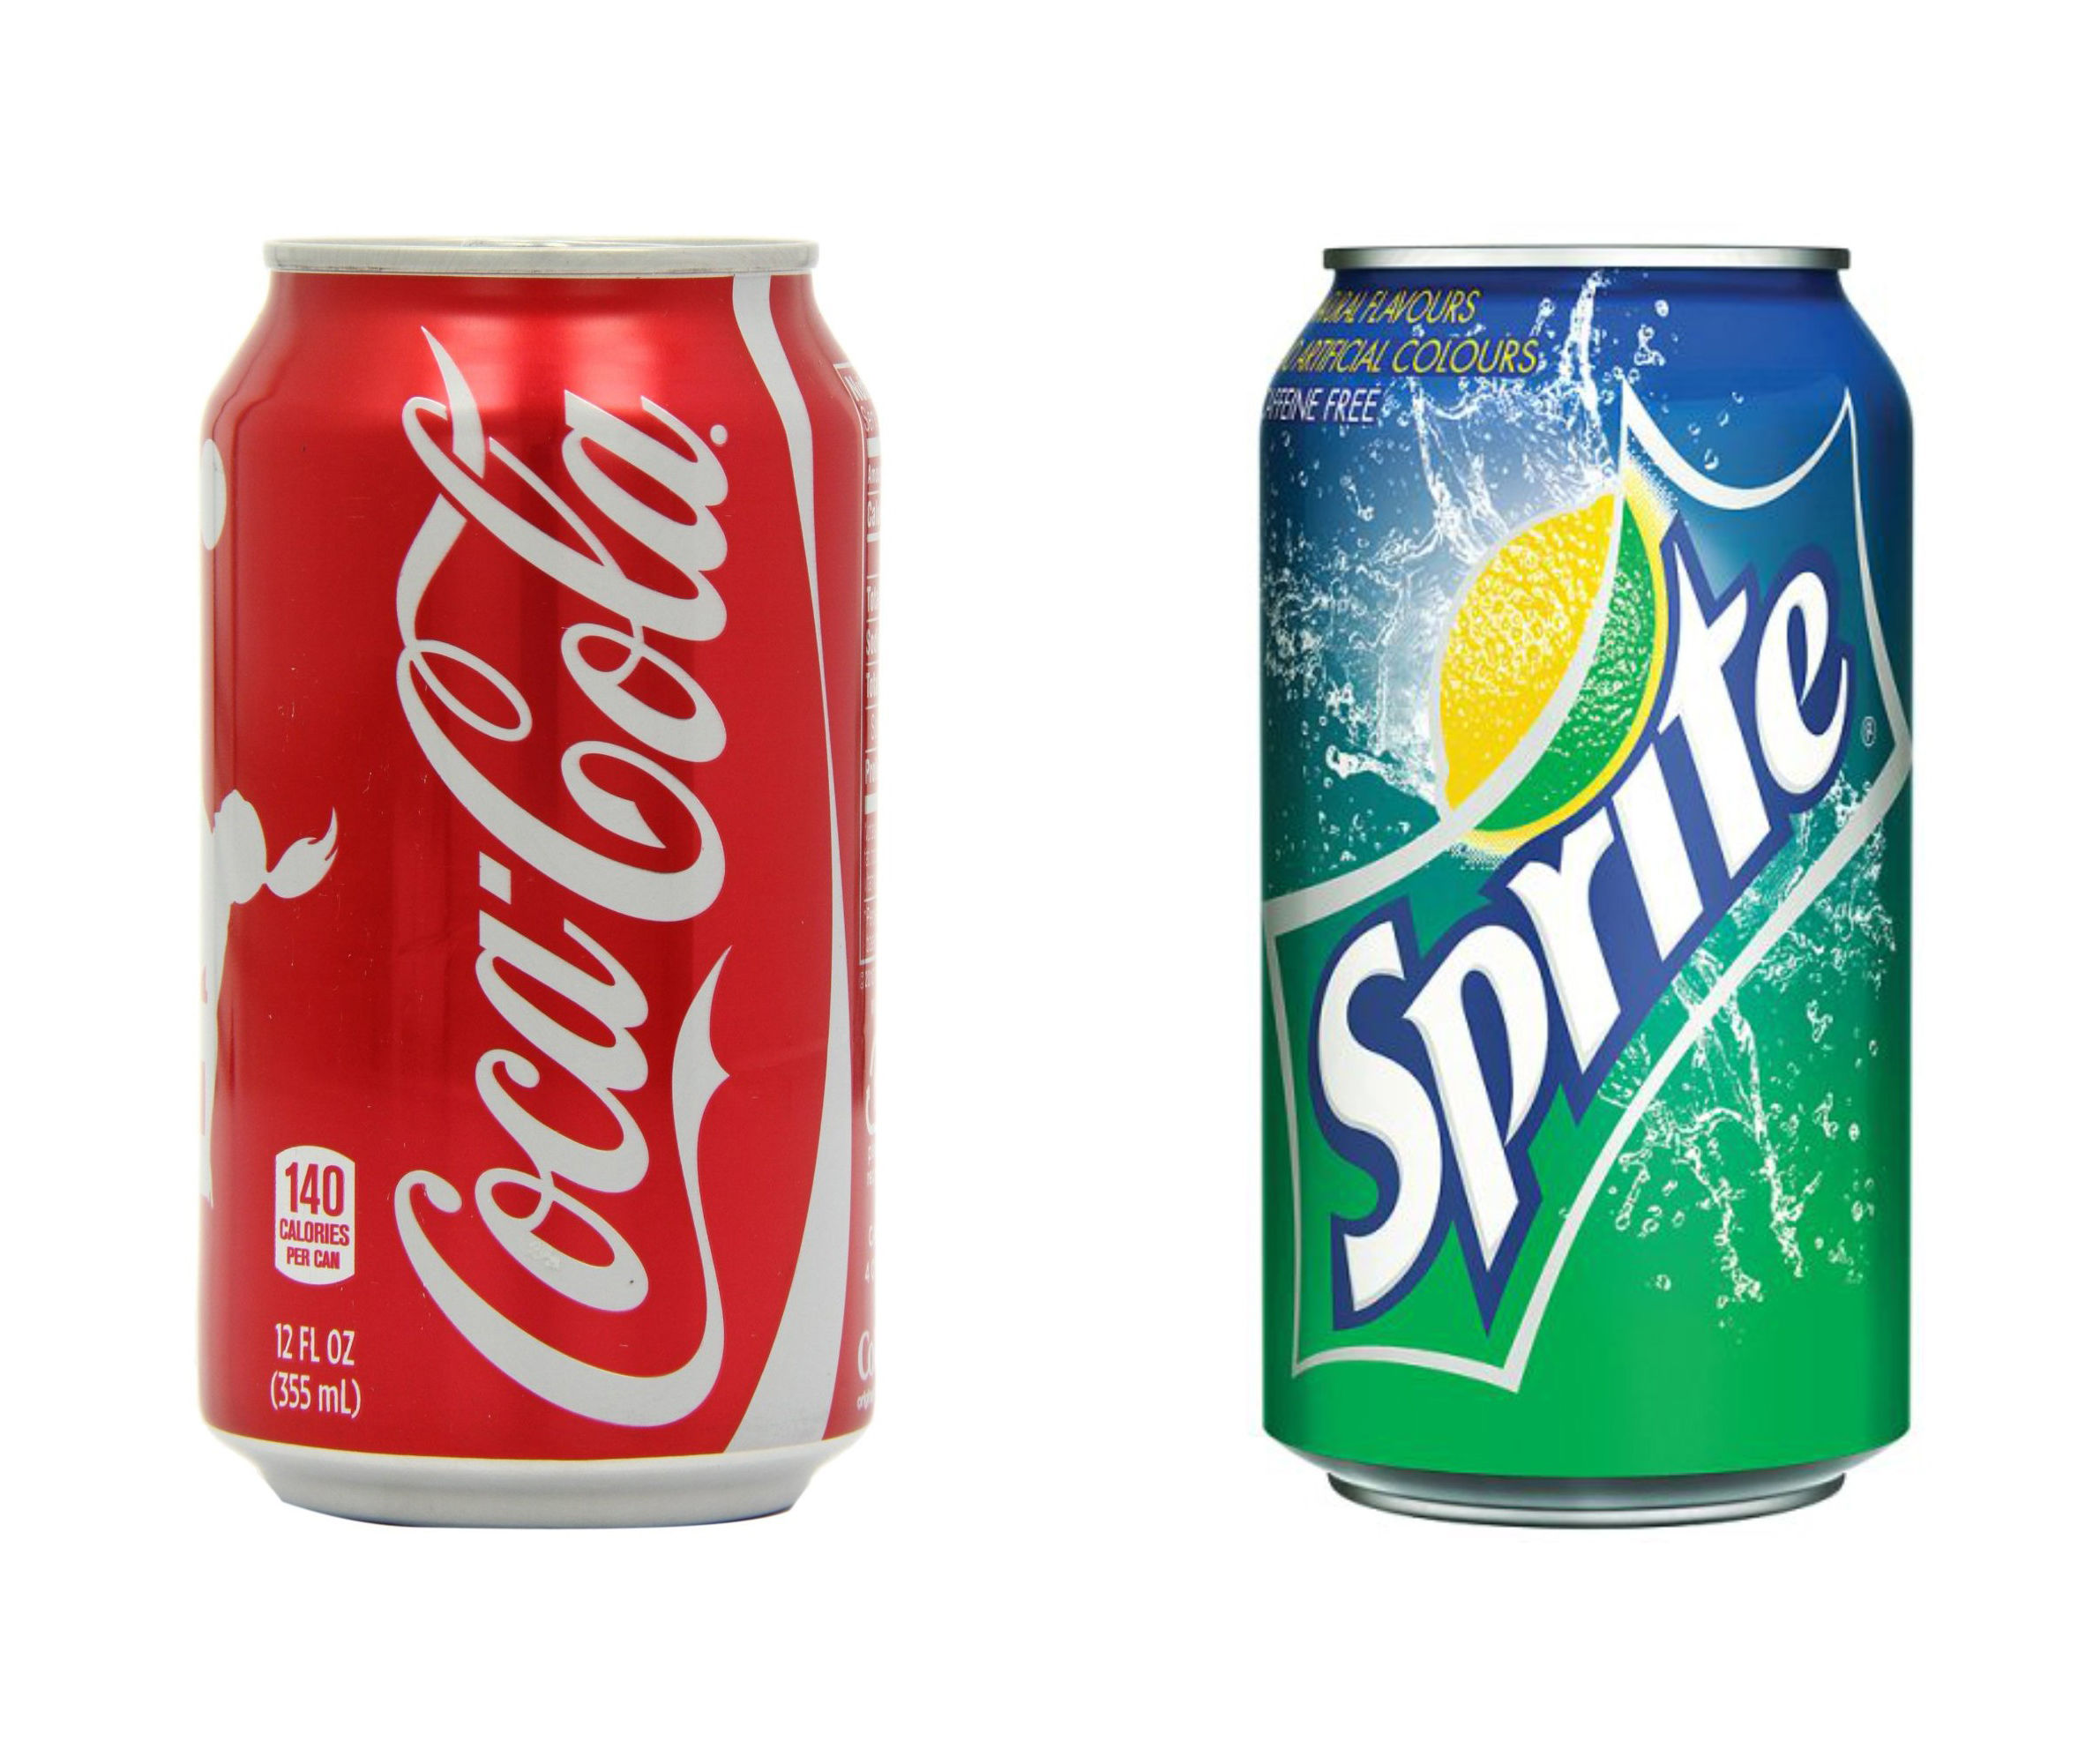 compare and contrast sprite with coca cola The rivalry between coca-cola and pepsi is legendary although the feud really heated up with the pepsi challenge in 1975 —which prompted coca-cola's sprite.